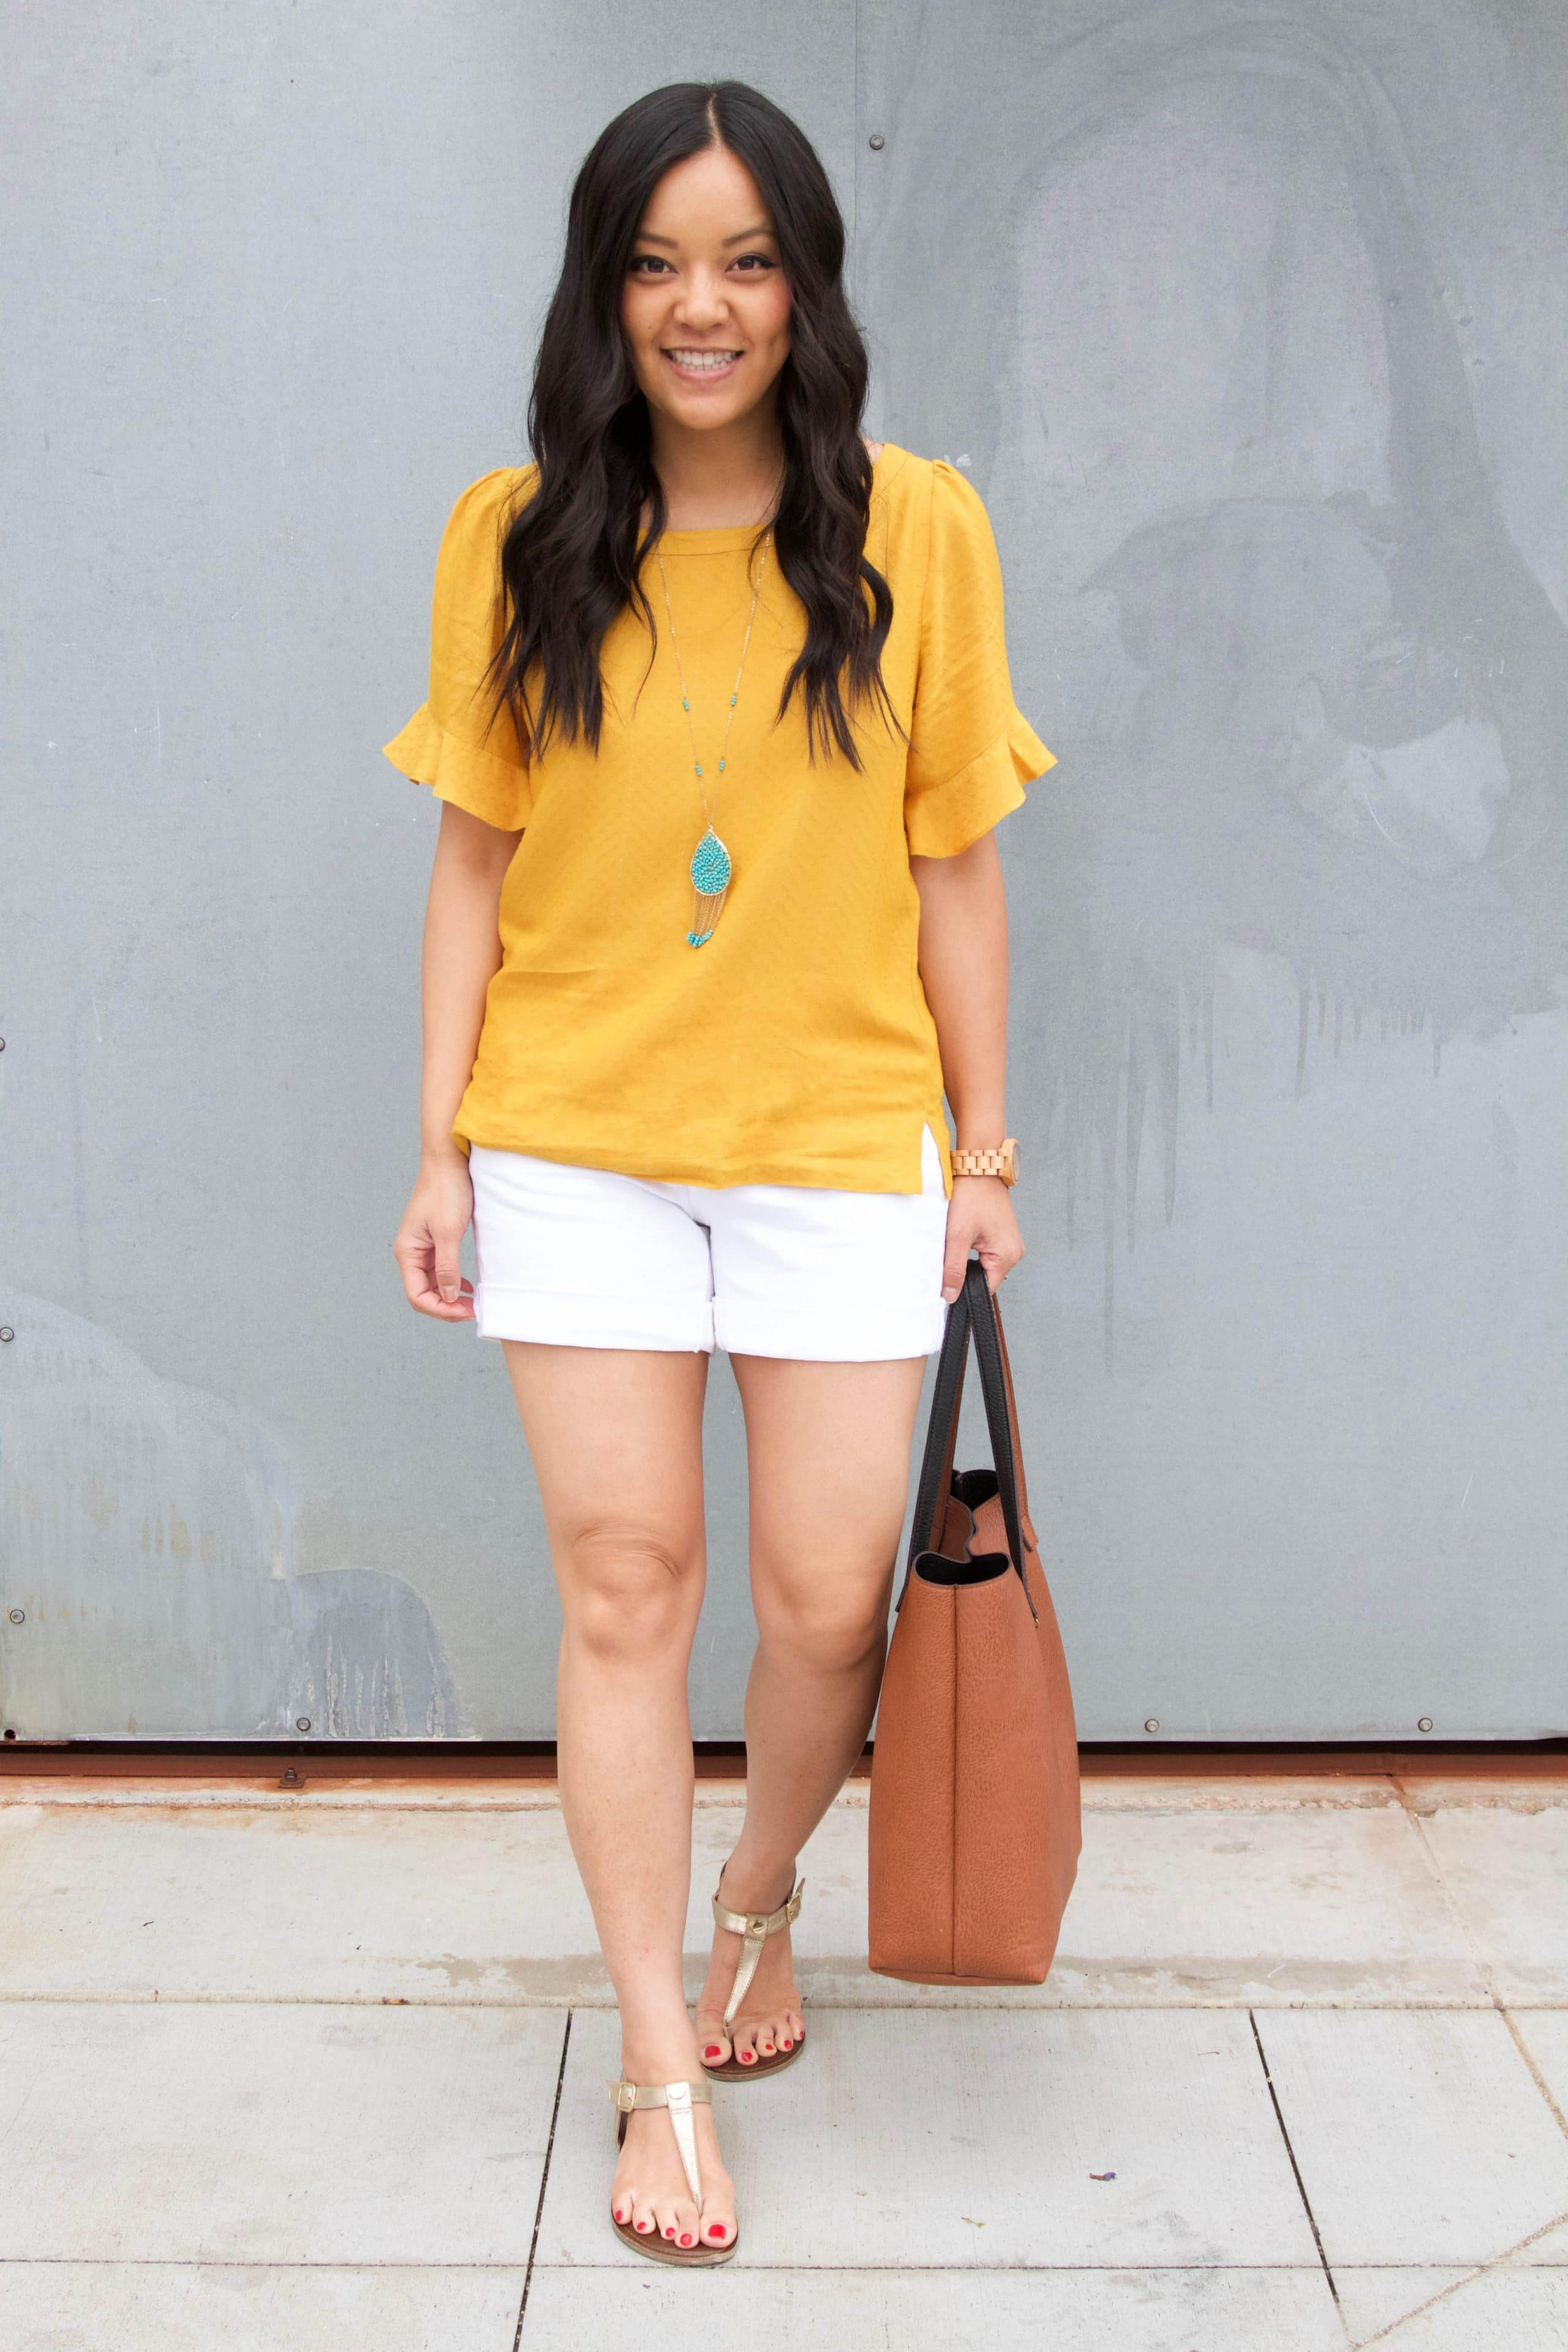 Marigold Blouse + White Shorts + Turquoise Jewelry + Gold Sandals